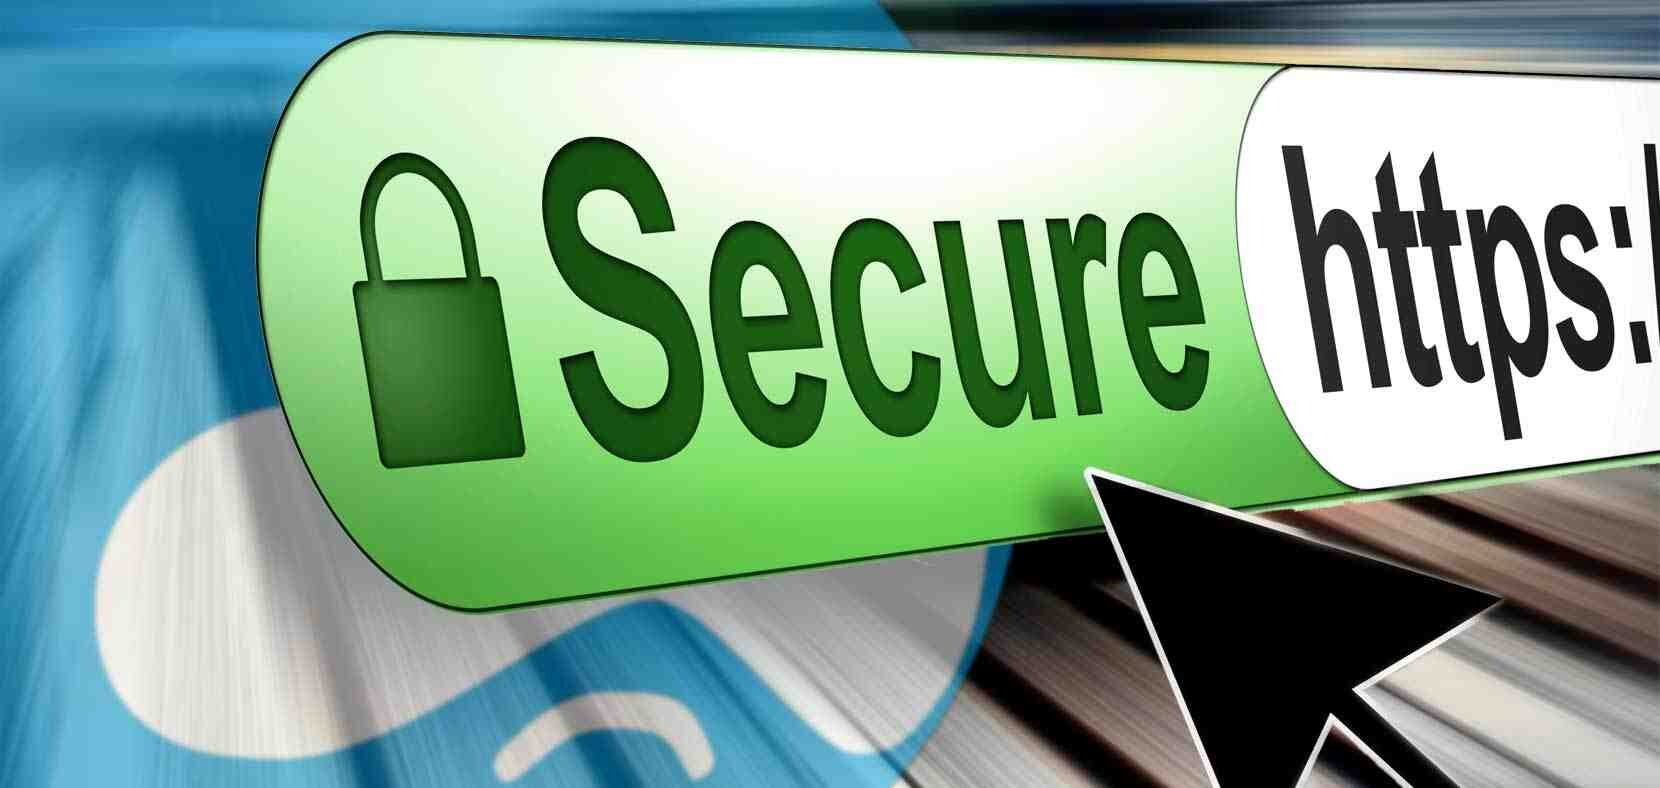 blog/article/secure-connection-who-needs-an-ssl-certificate